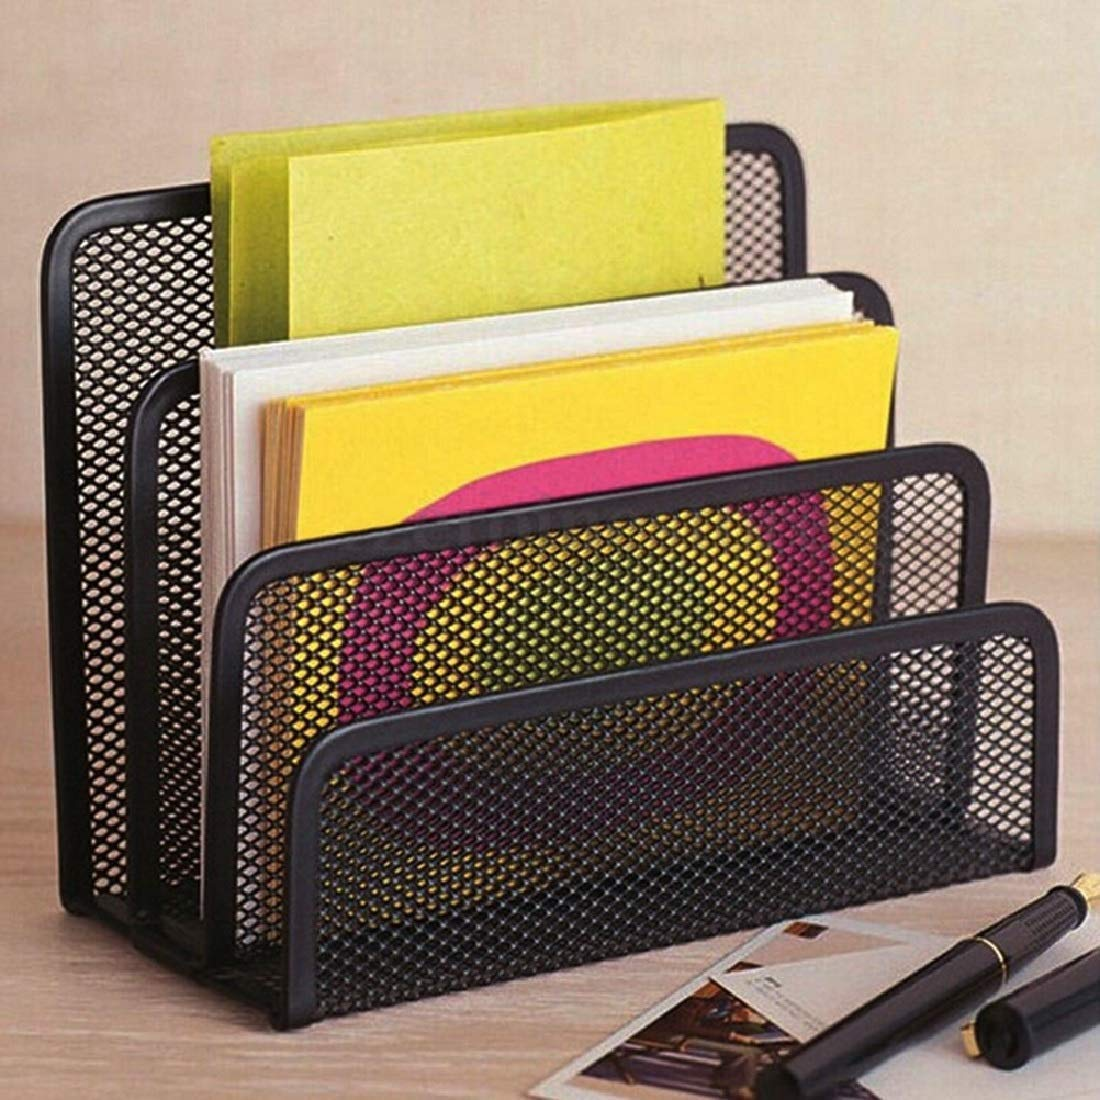 Metal Book Holder - Office Desk Accessories